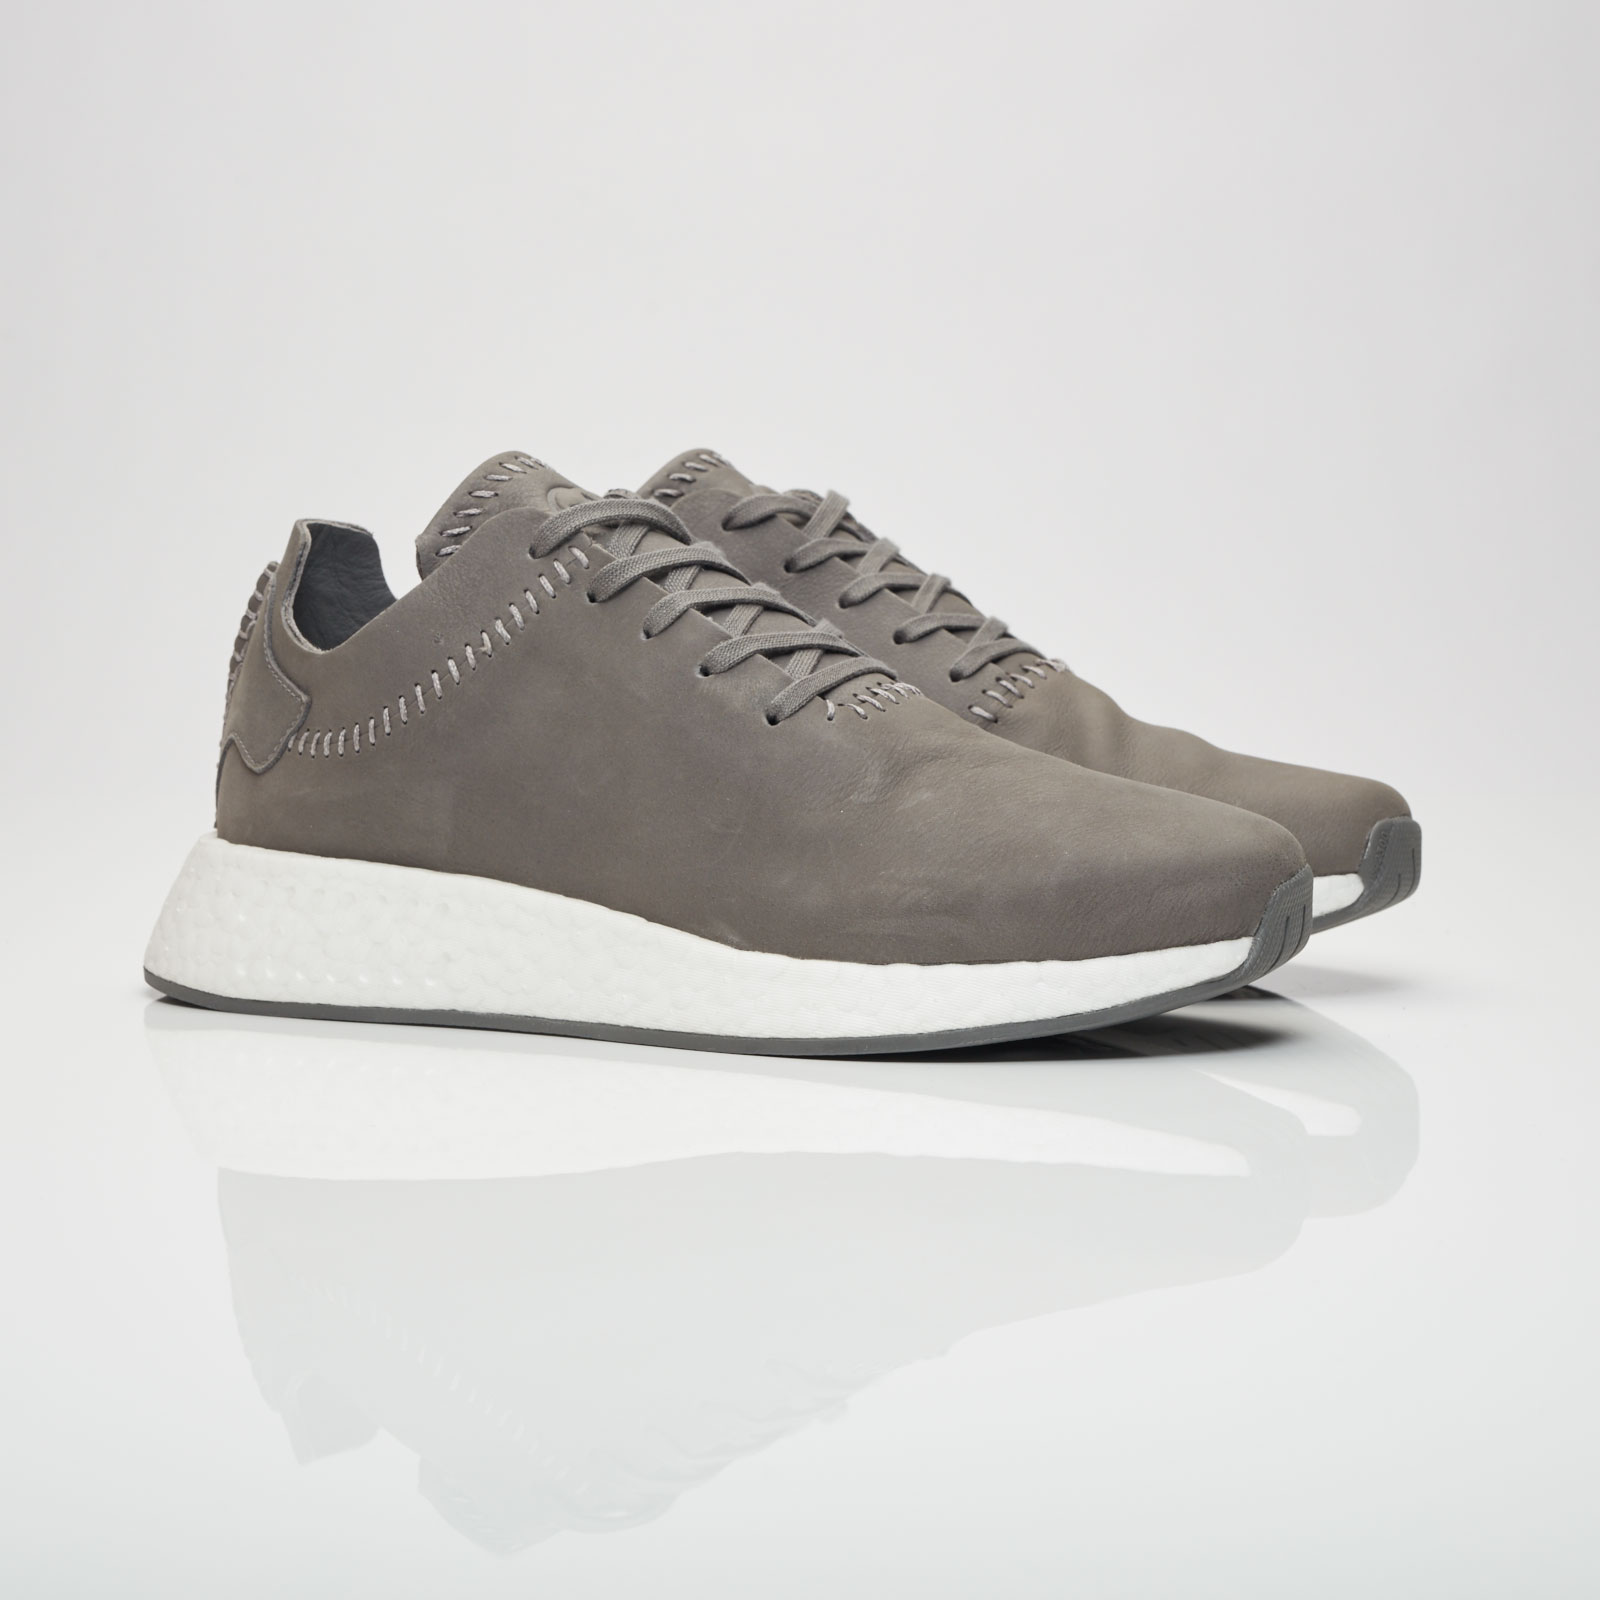 best loved 3d303 677c2 adidas NMD R2 Leather - Bb3117 - Sneakersnstuff | sneakers ...